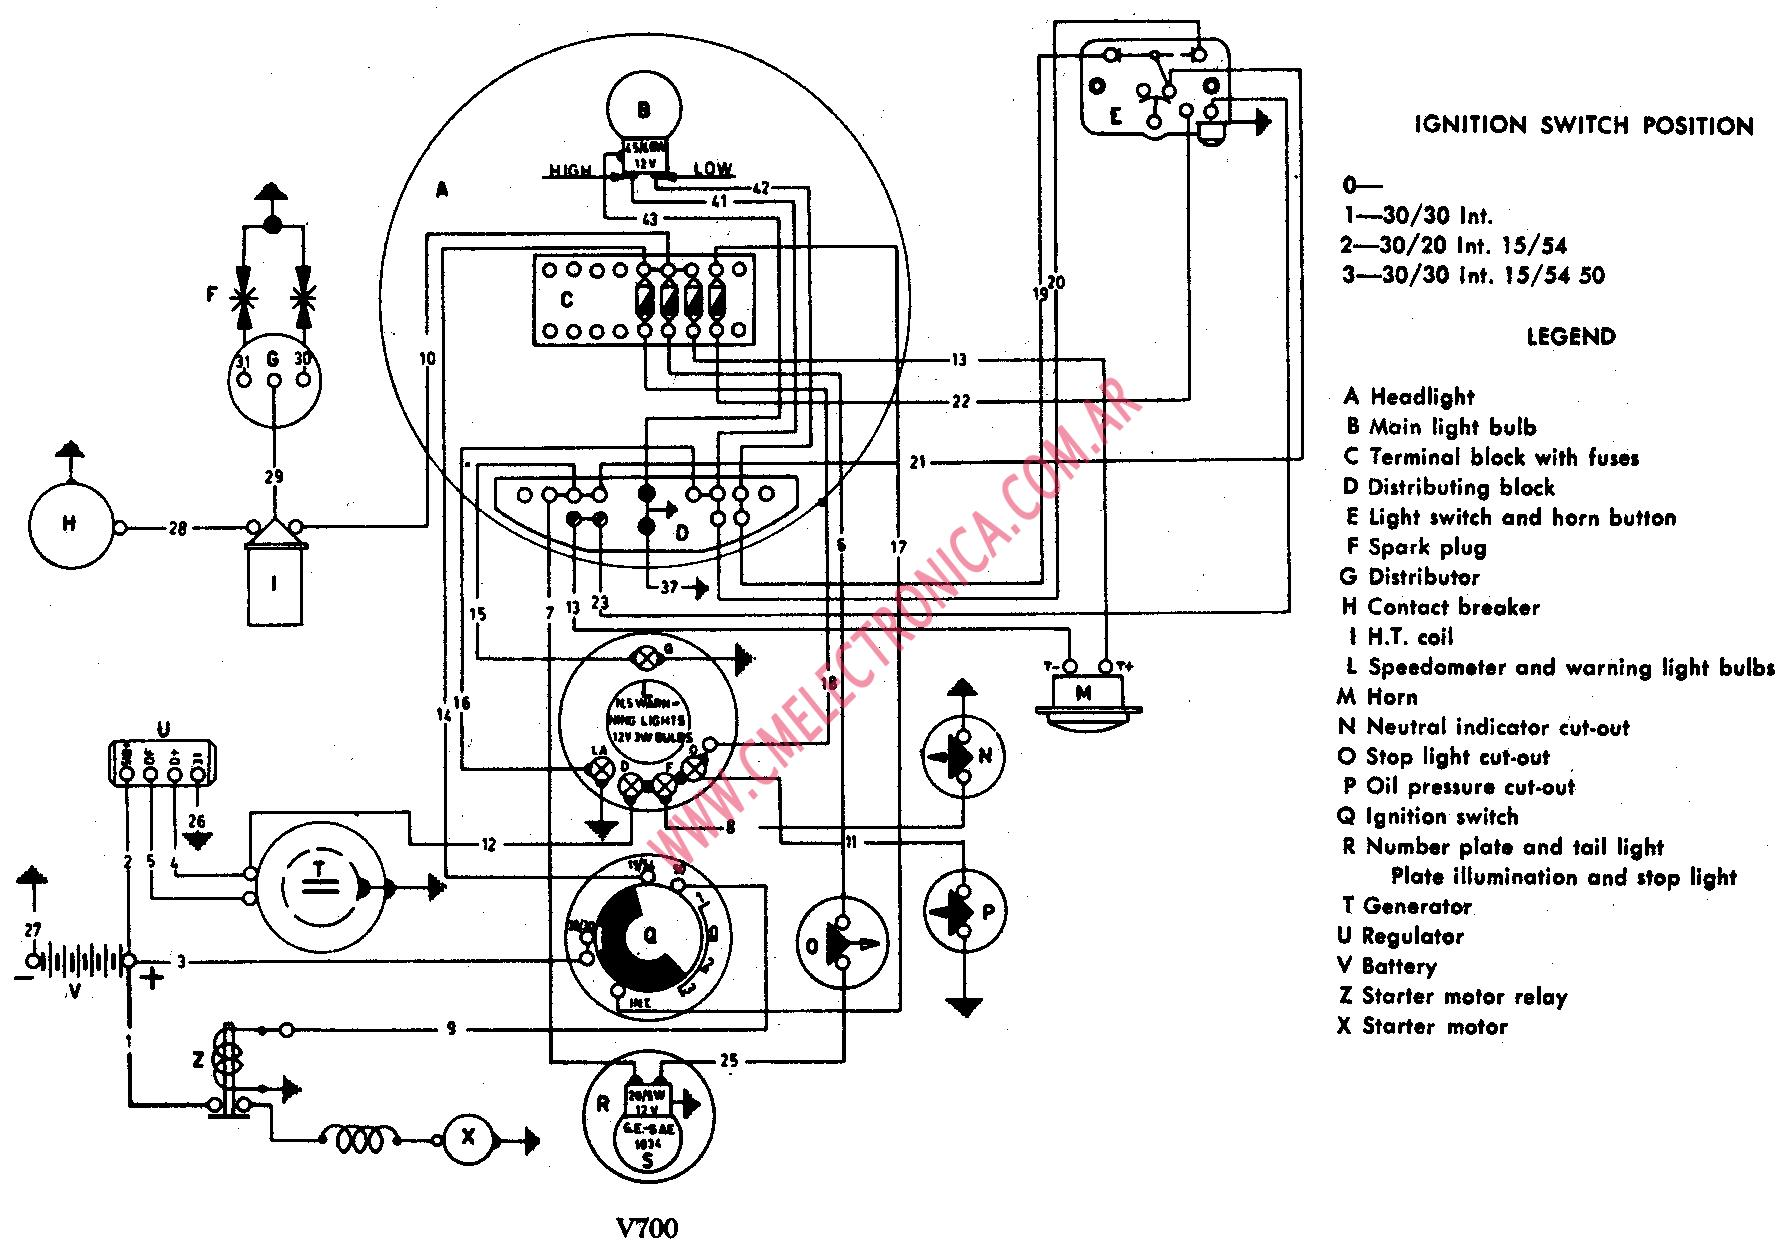 100 Hp Johnson Outboard Motor Wiring Diagram